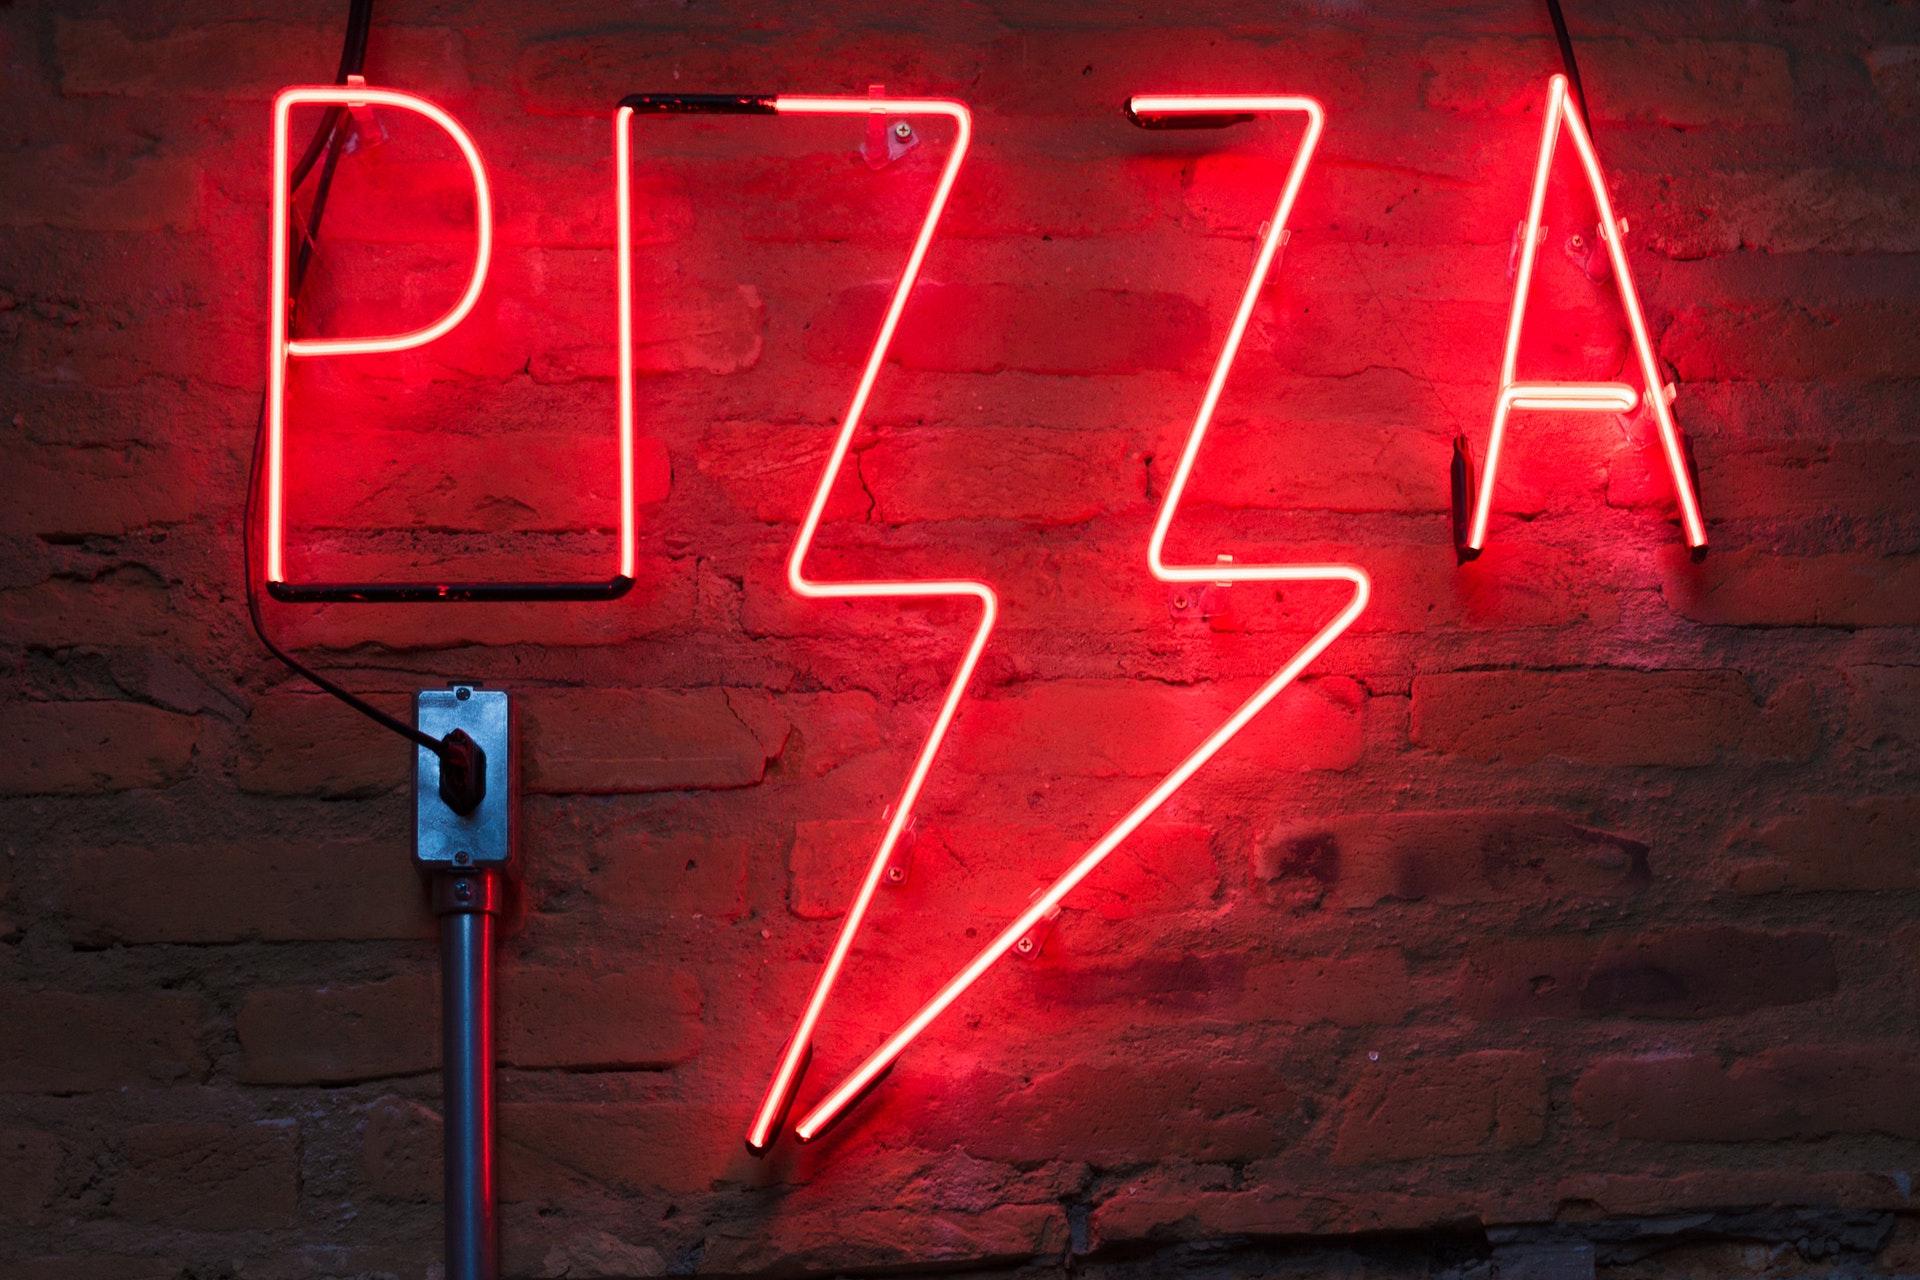 London's best pizza, best pizza in london, best quirky pizza in London